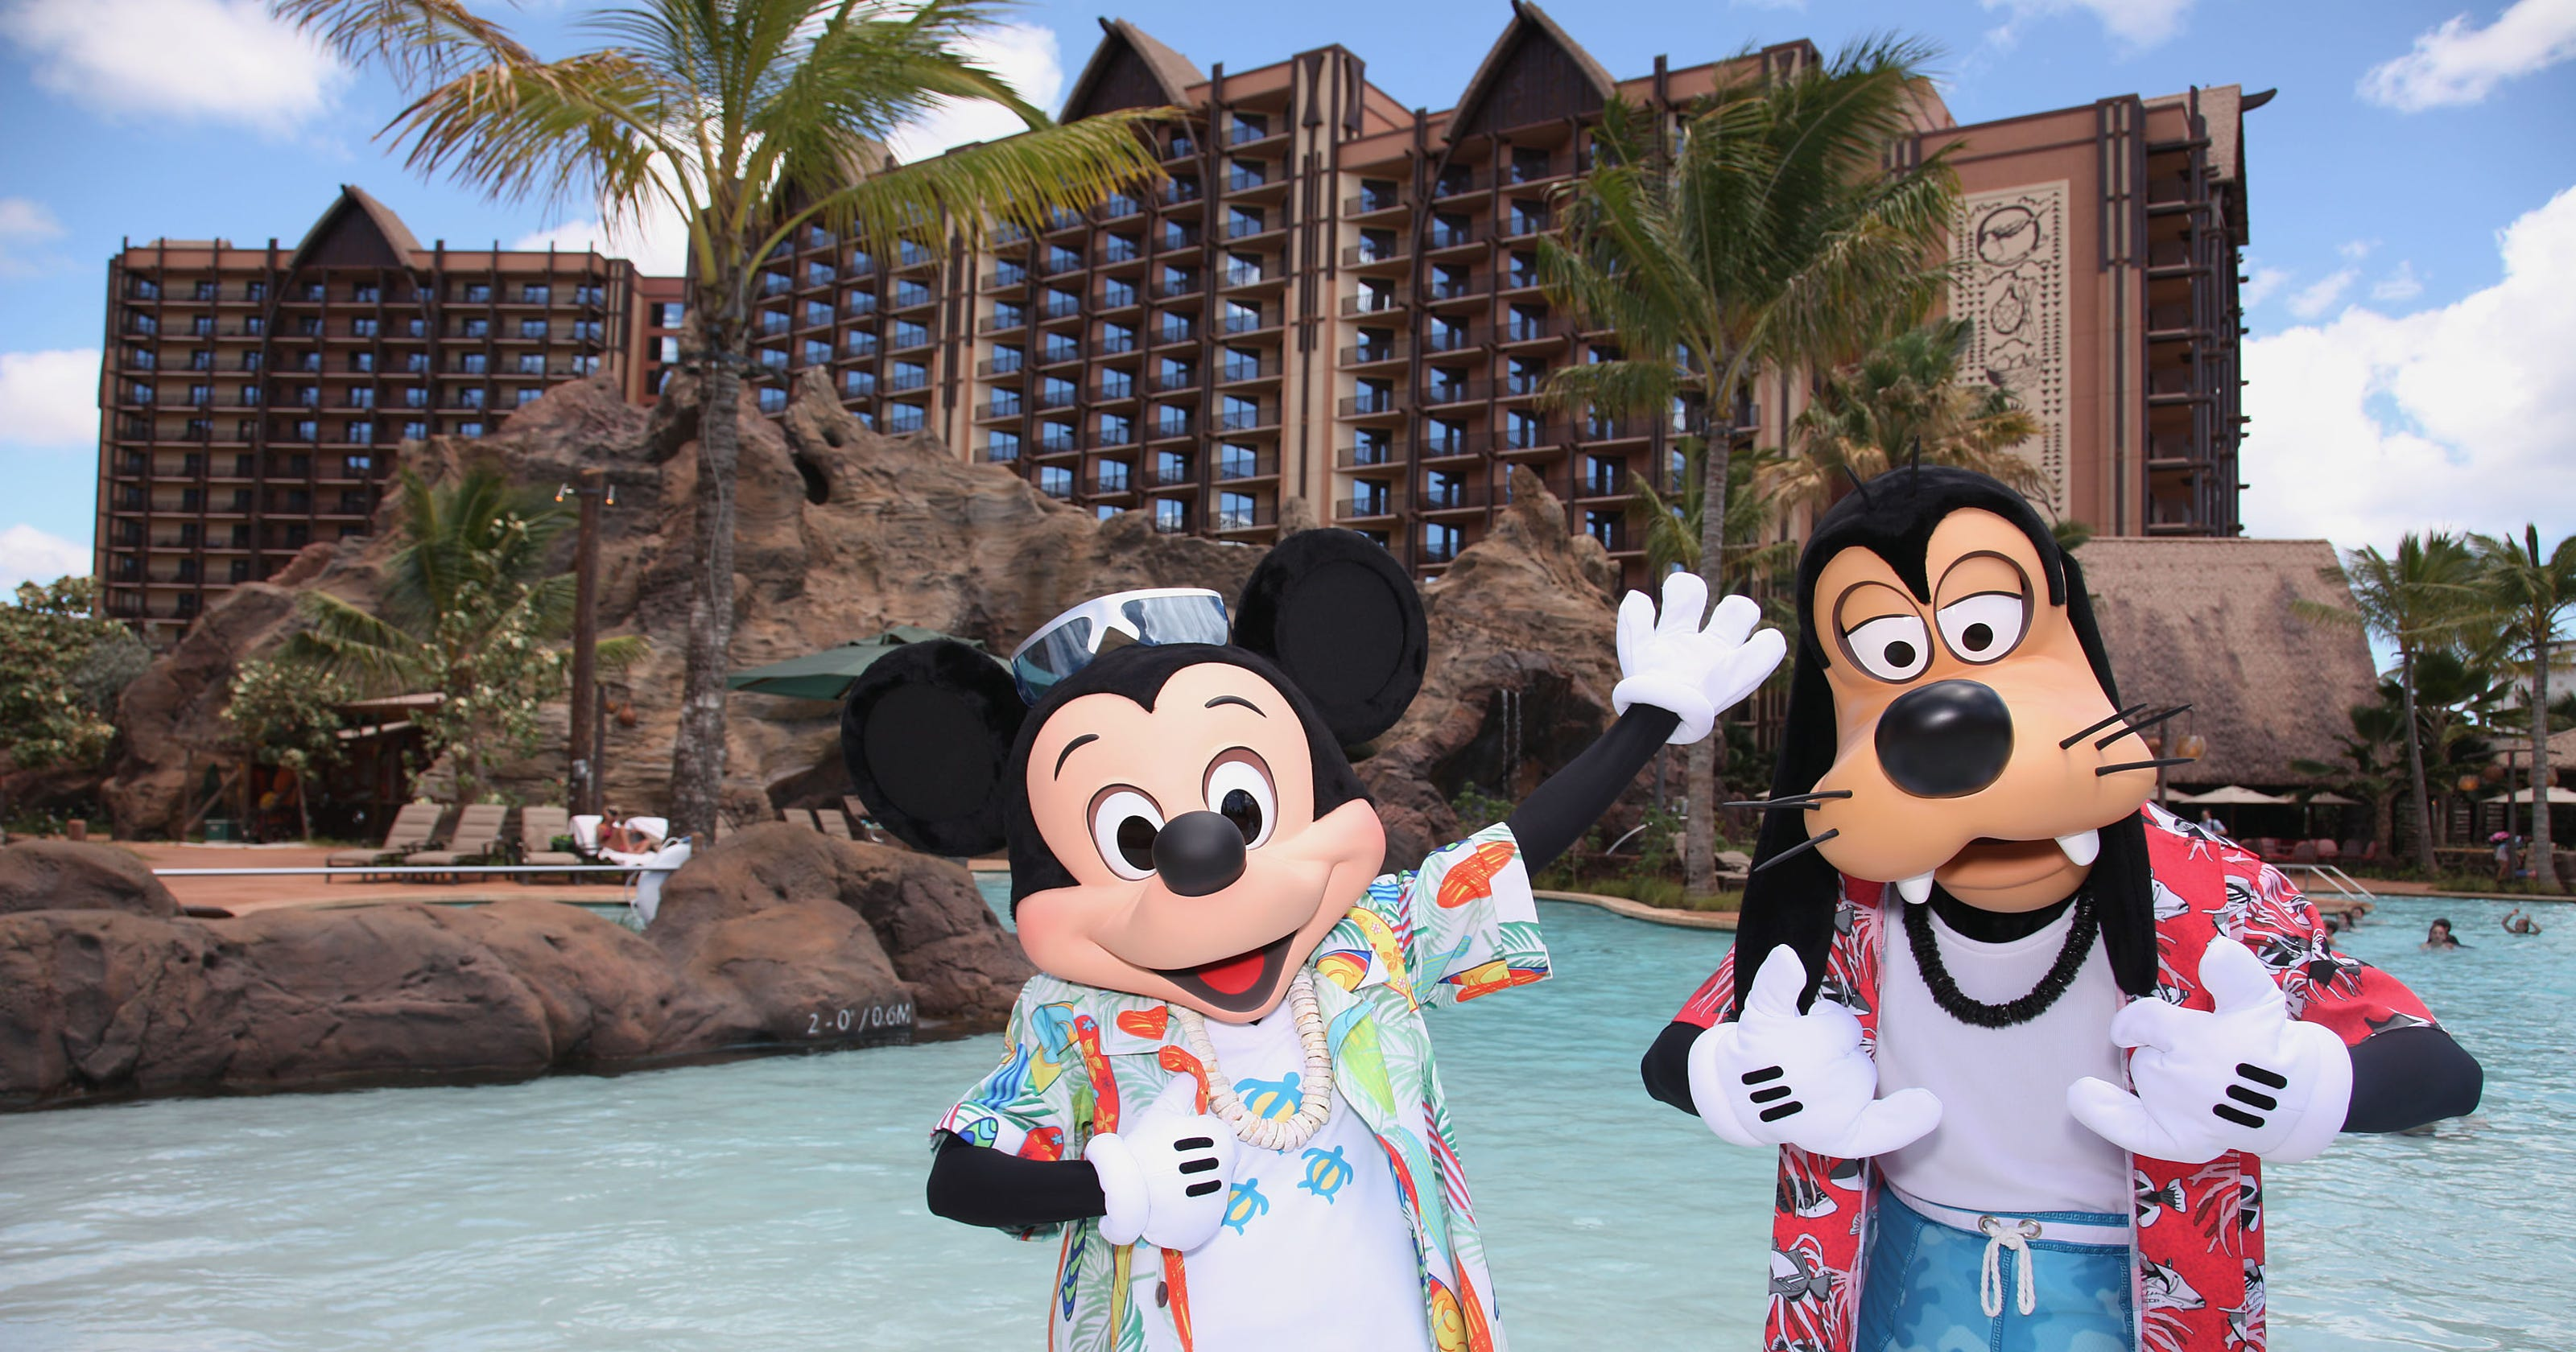 Disneys Aulani Resort A Hawaiian Vacation With Characters